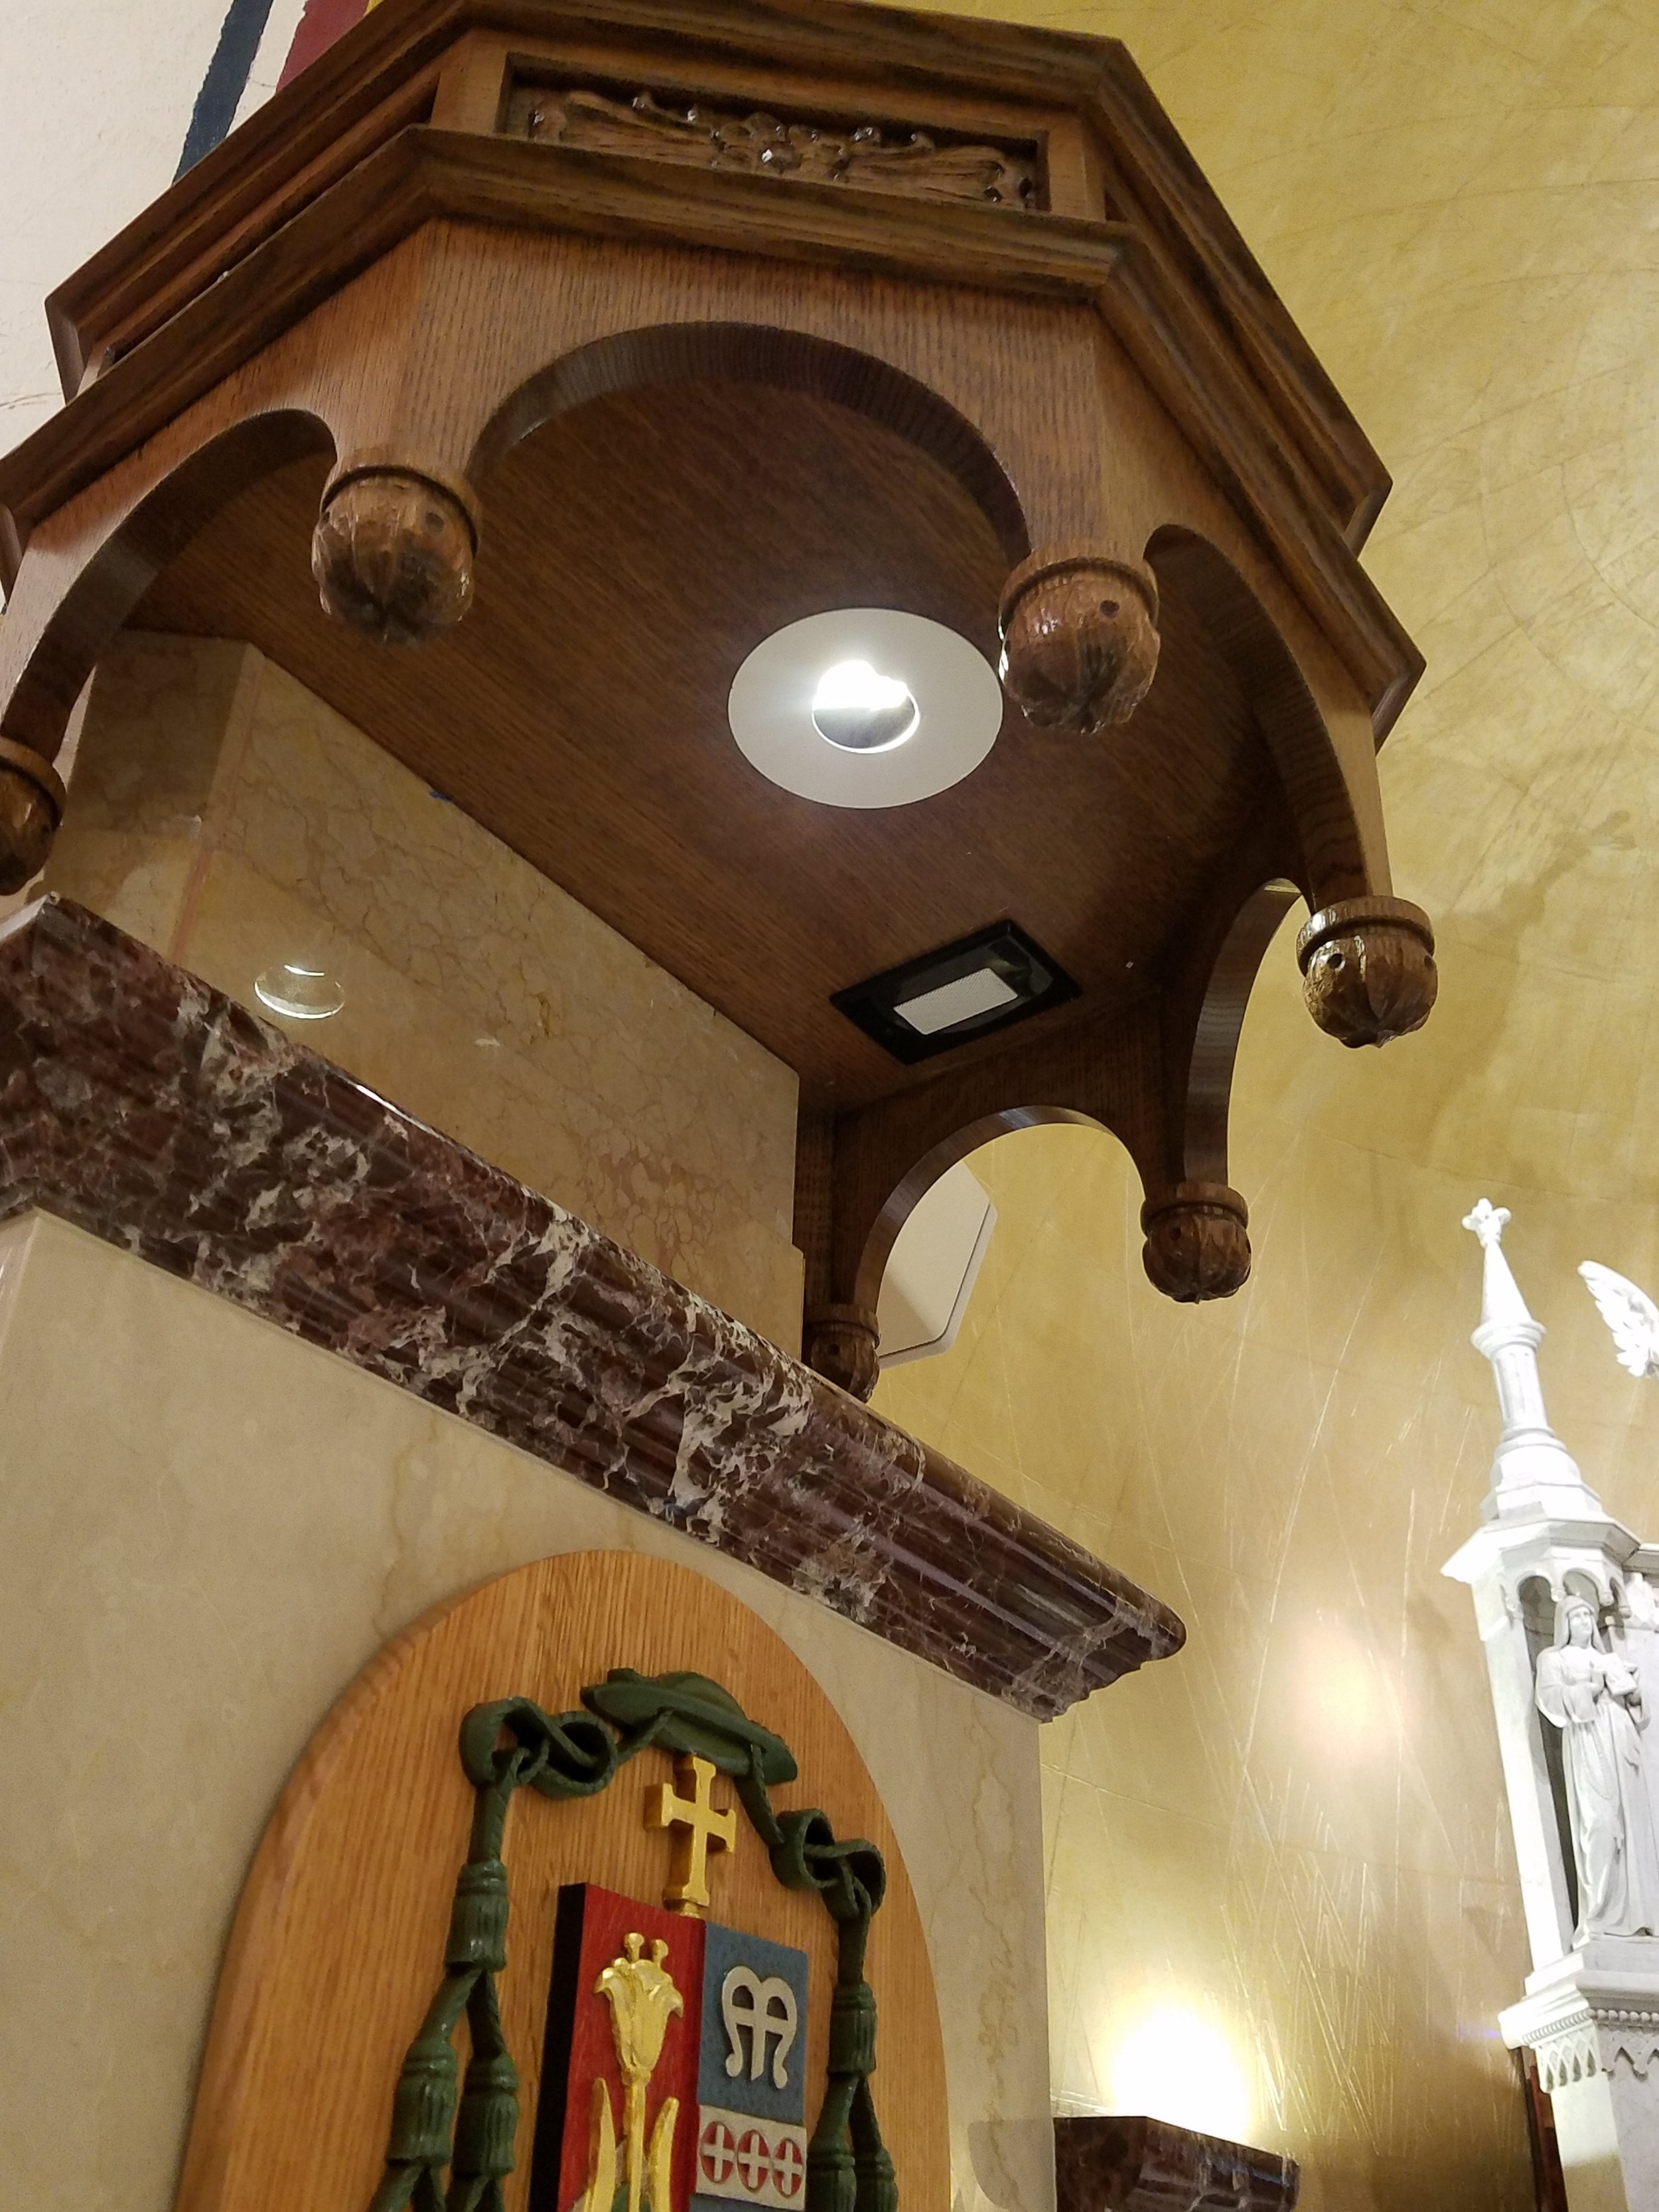 A custom speaker mounted in the Cathedra provides audio for the Bishop.